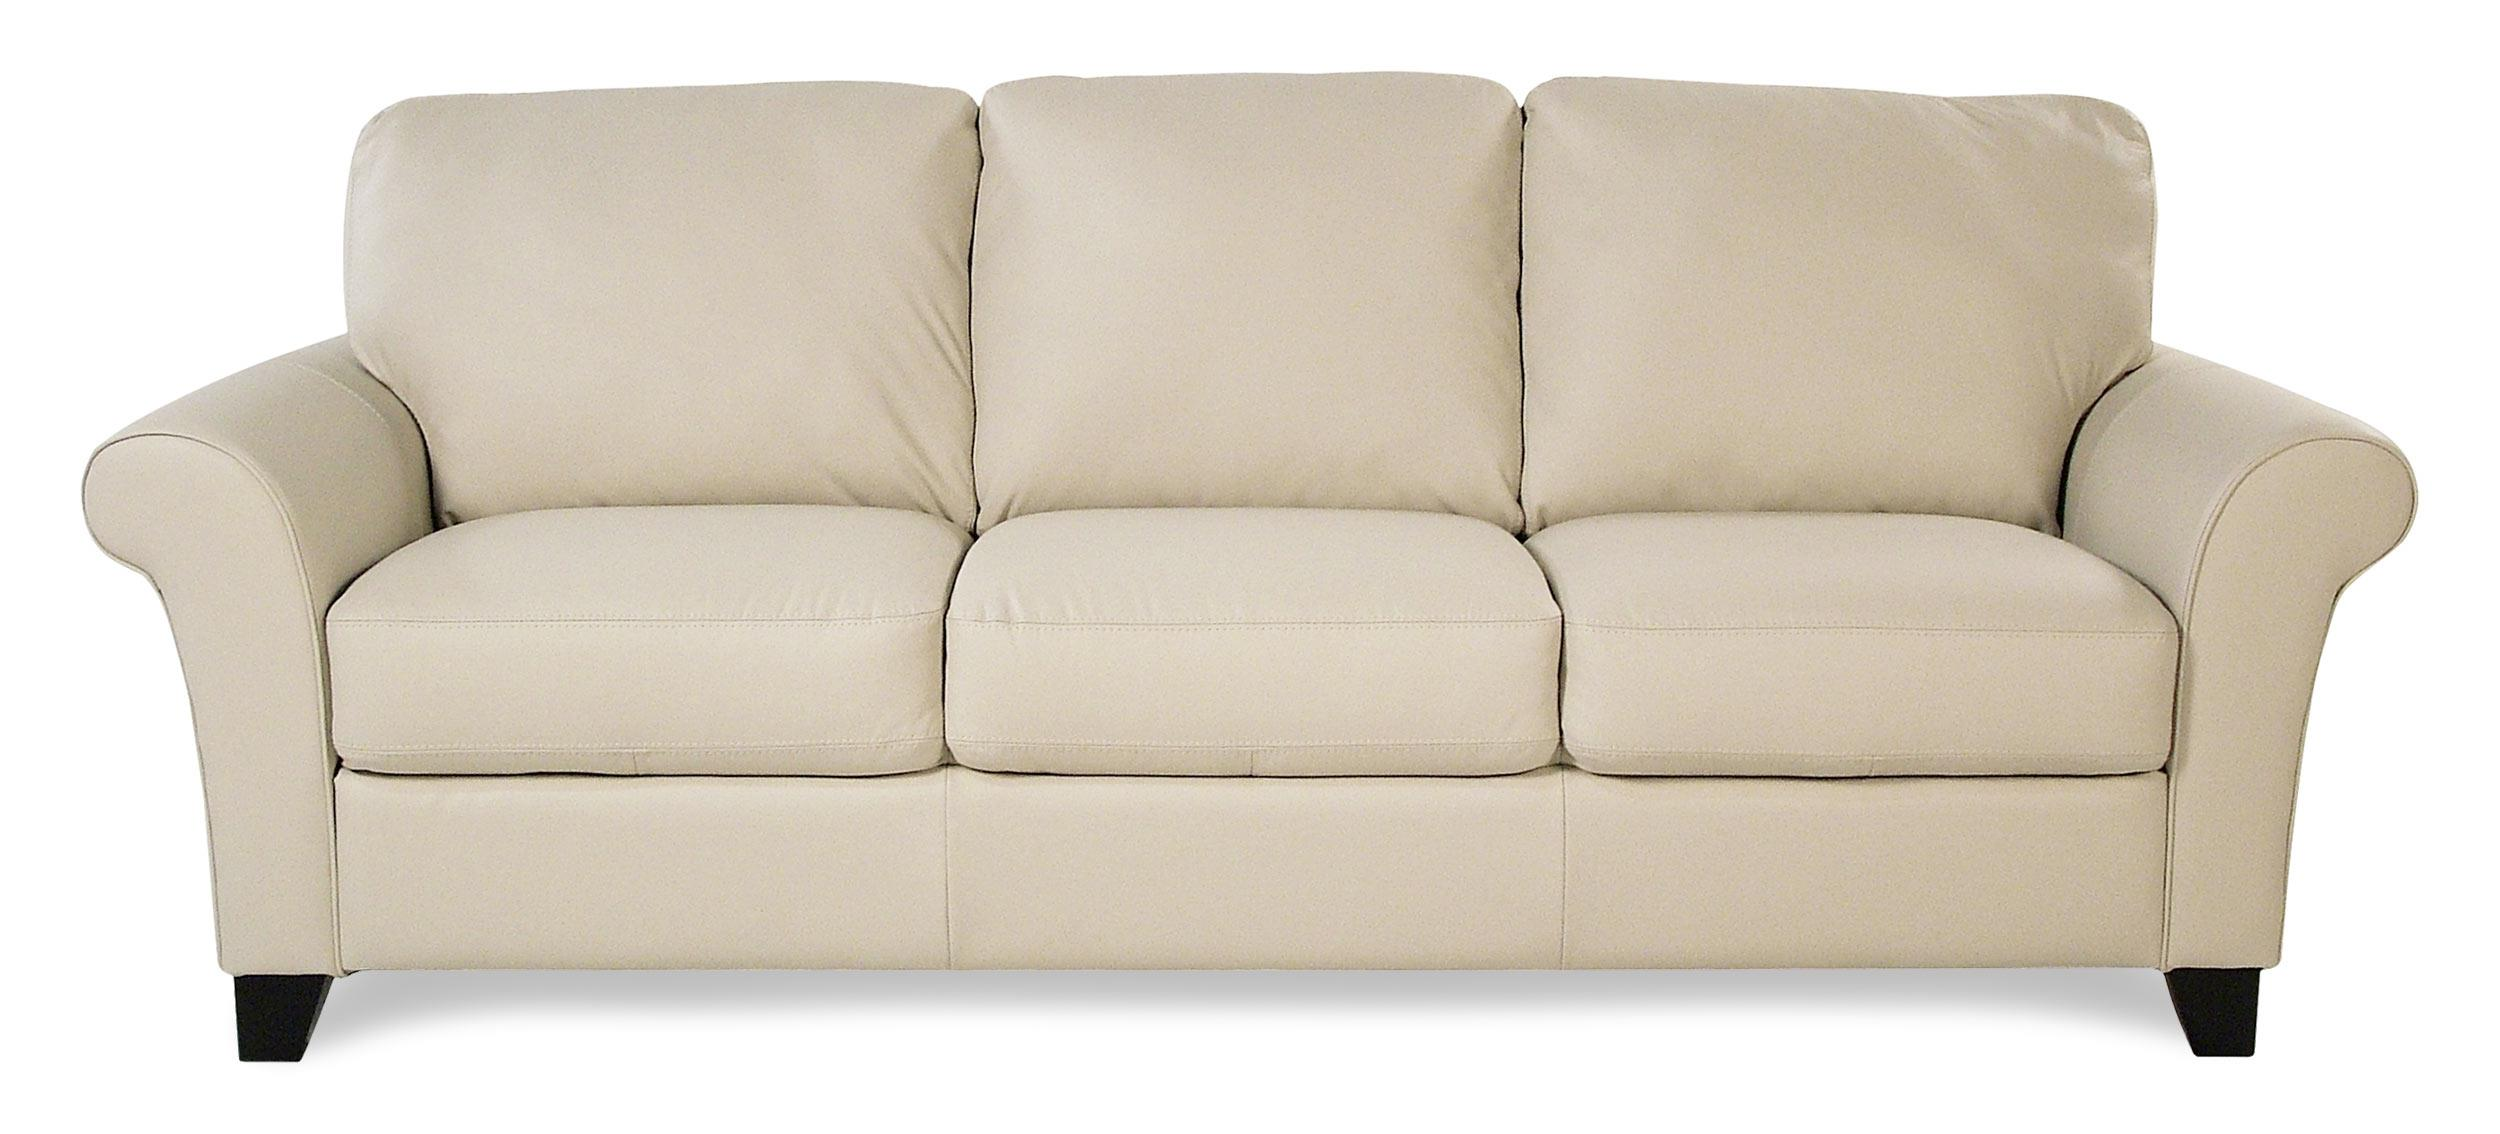 Katahdin transitional sofa with flared arms rotmans for Furniture 77429